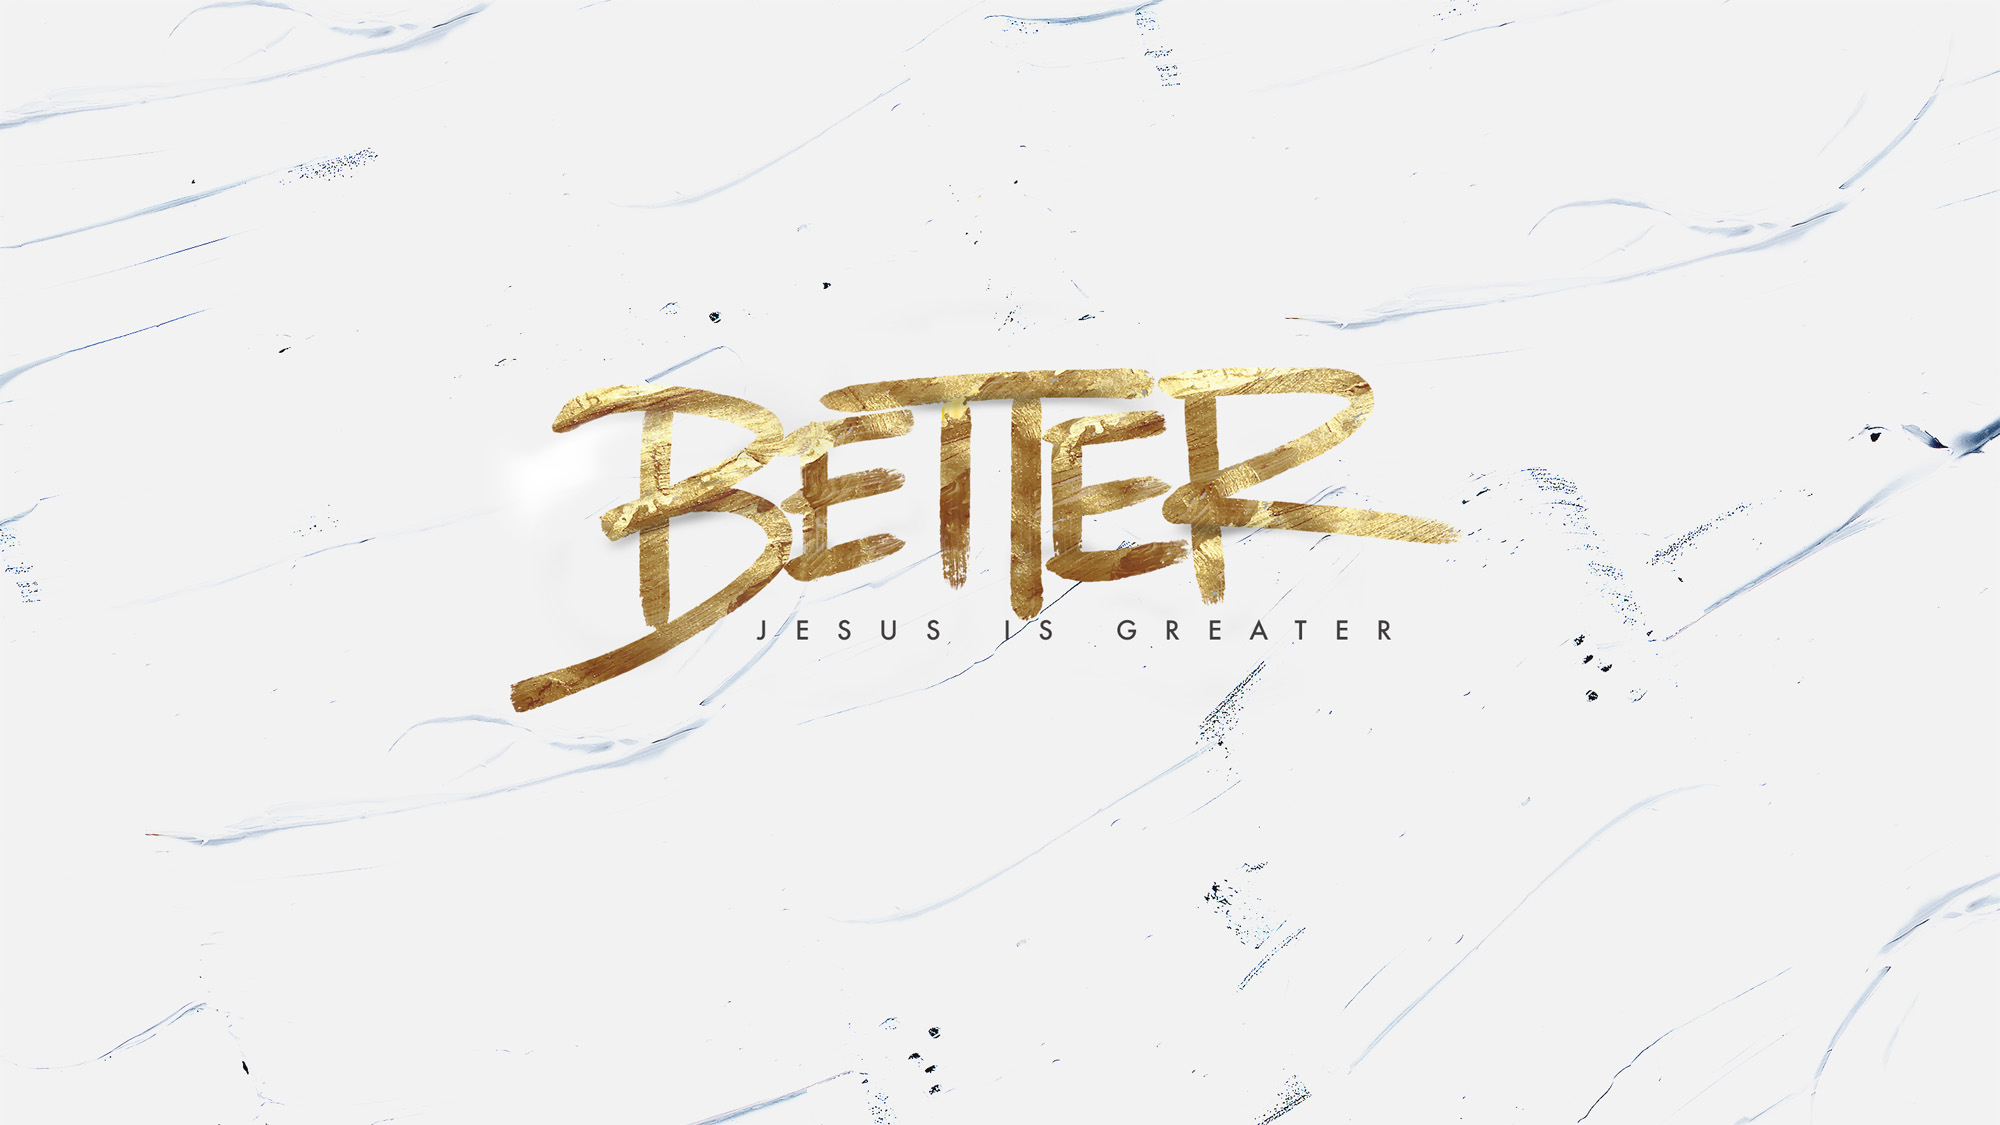 better-title-1-Wide 16x9.jpg